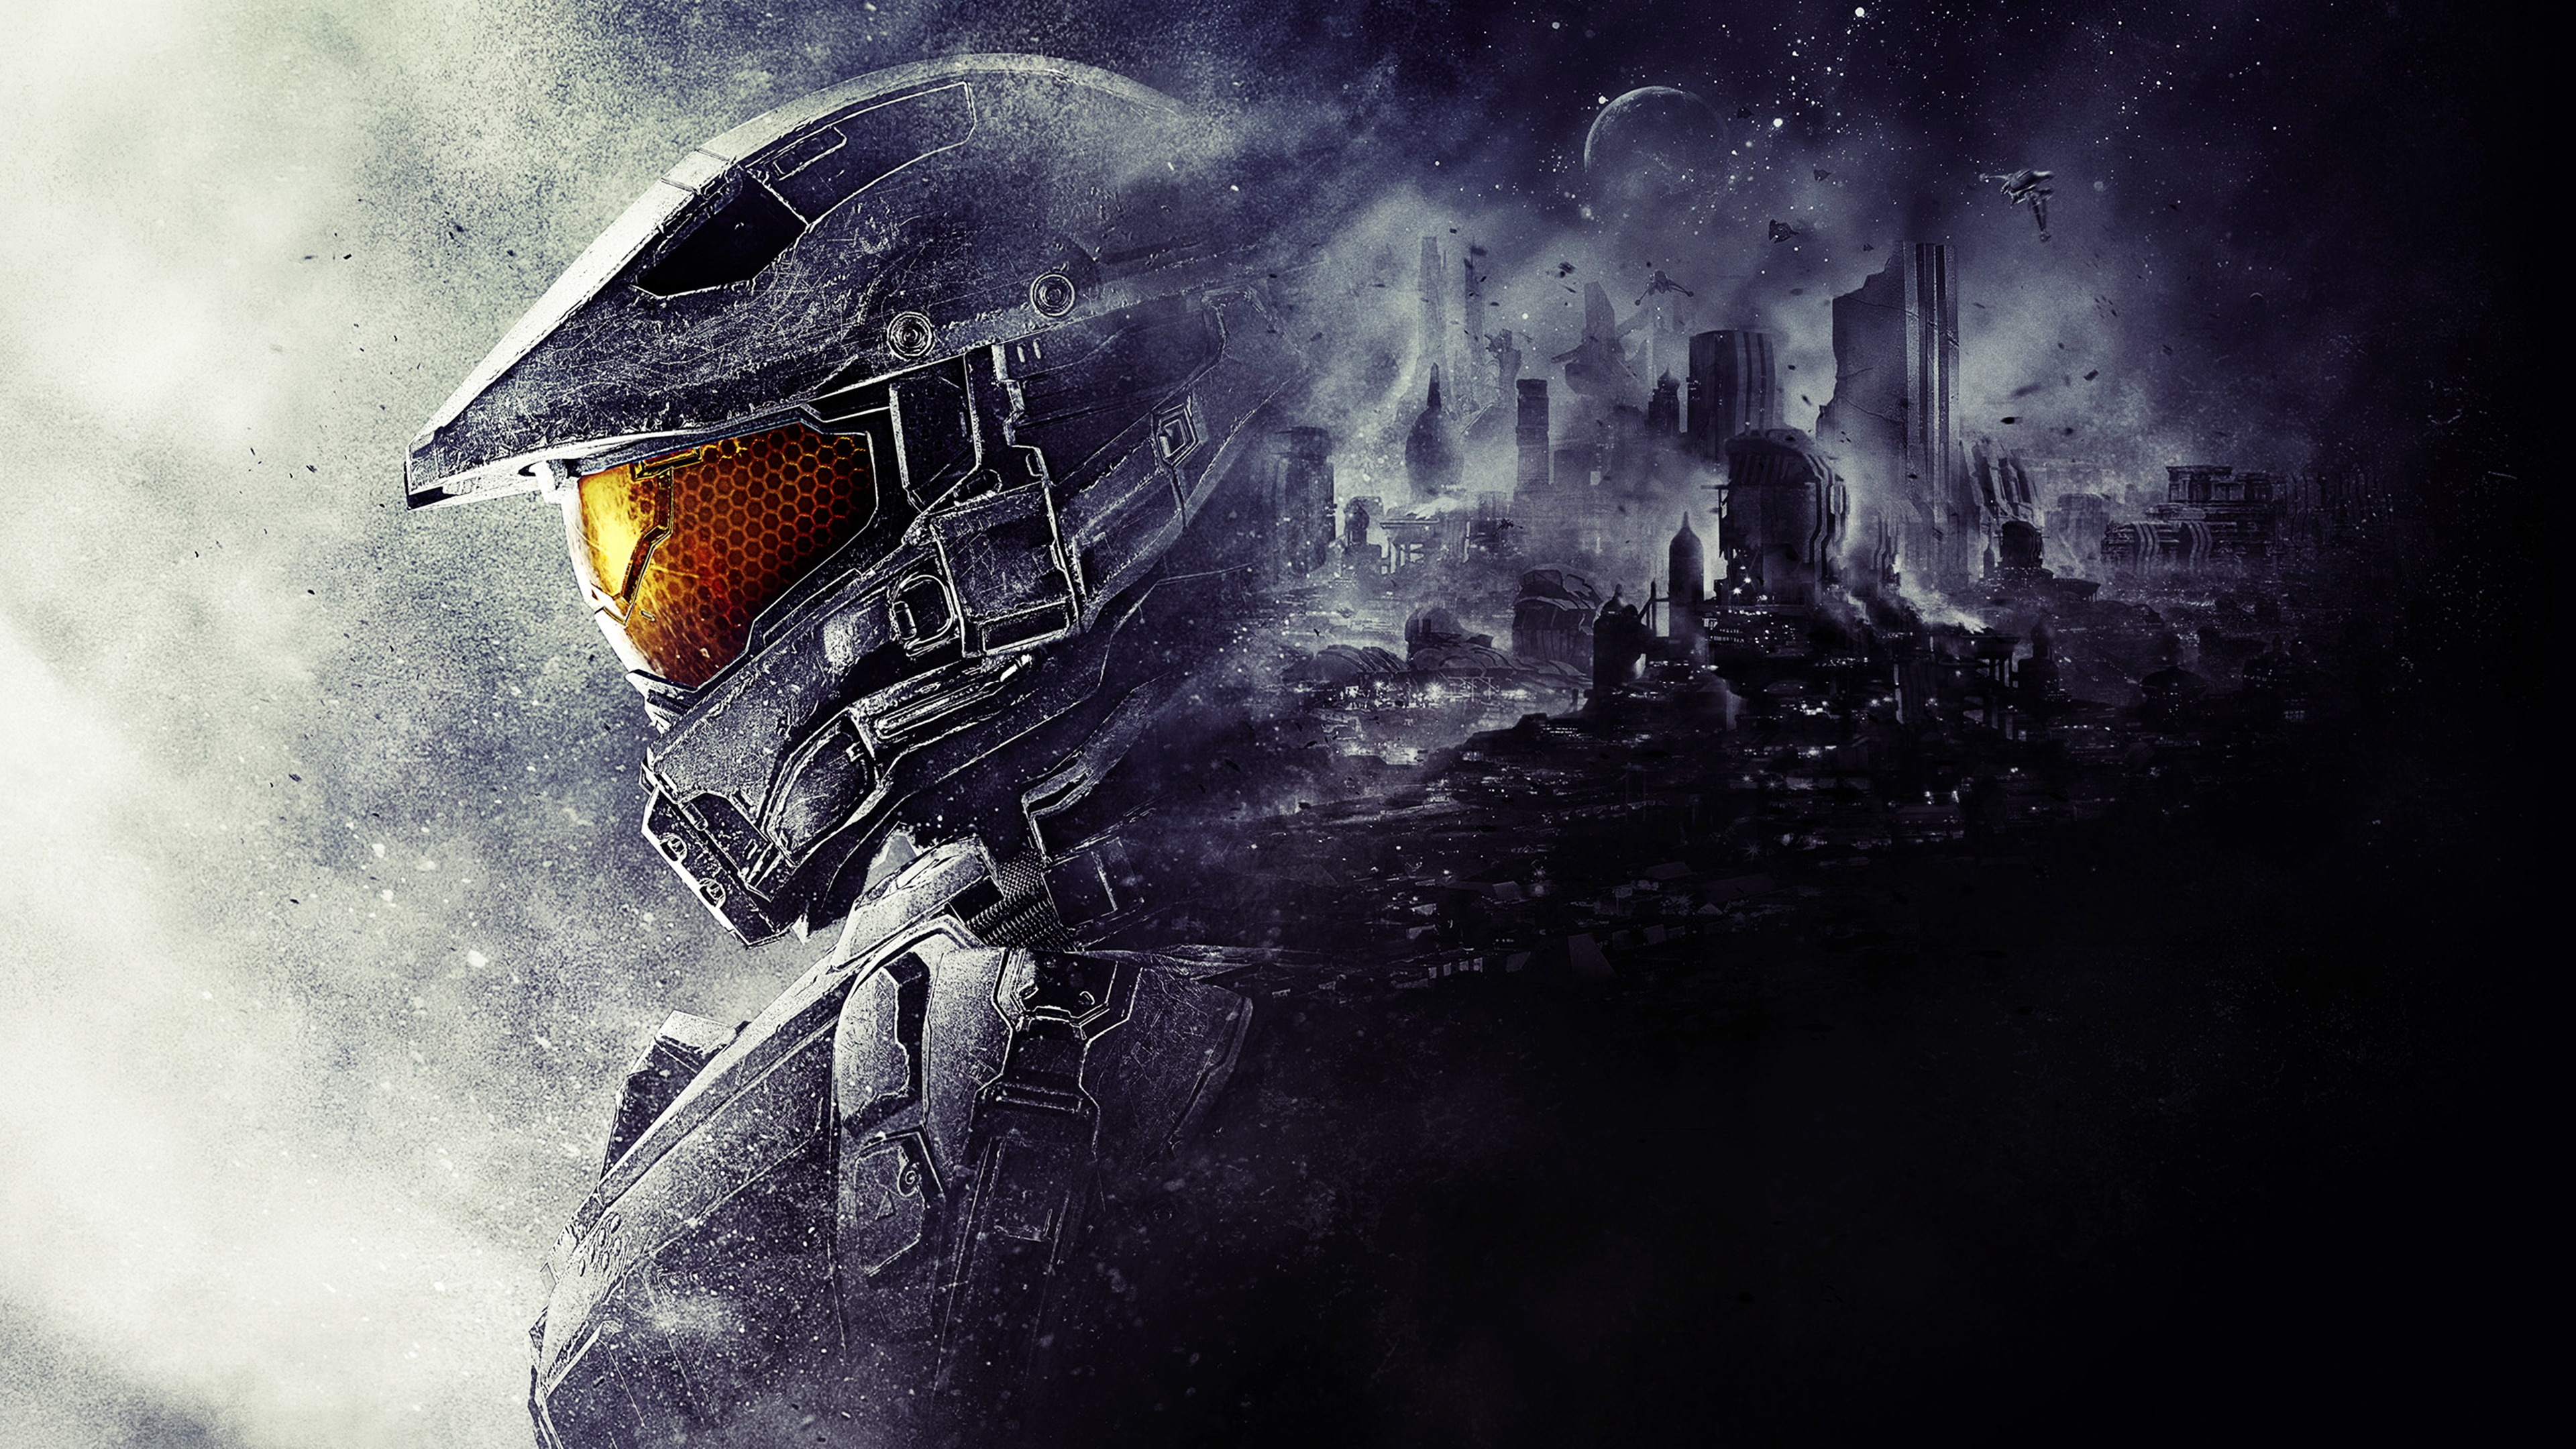 Halo 5 Guardians Fondo De Pantalla 4k Ultra Hd Id2986